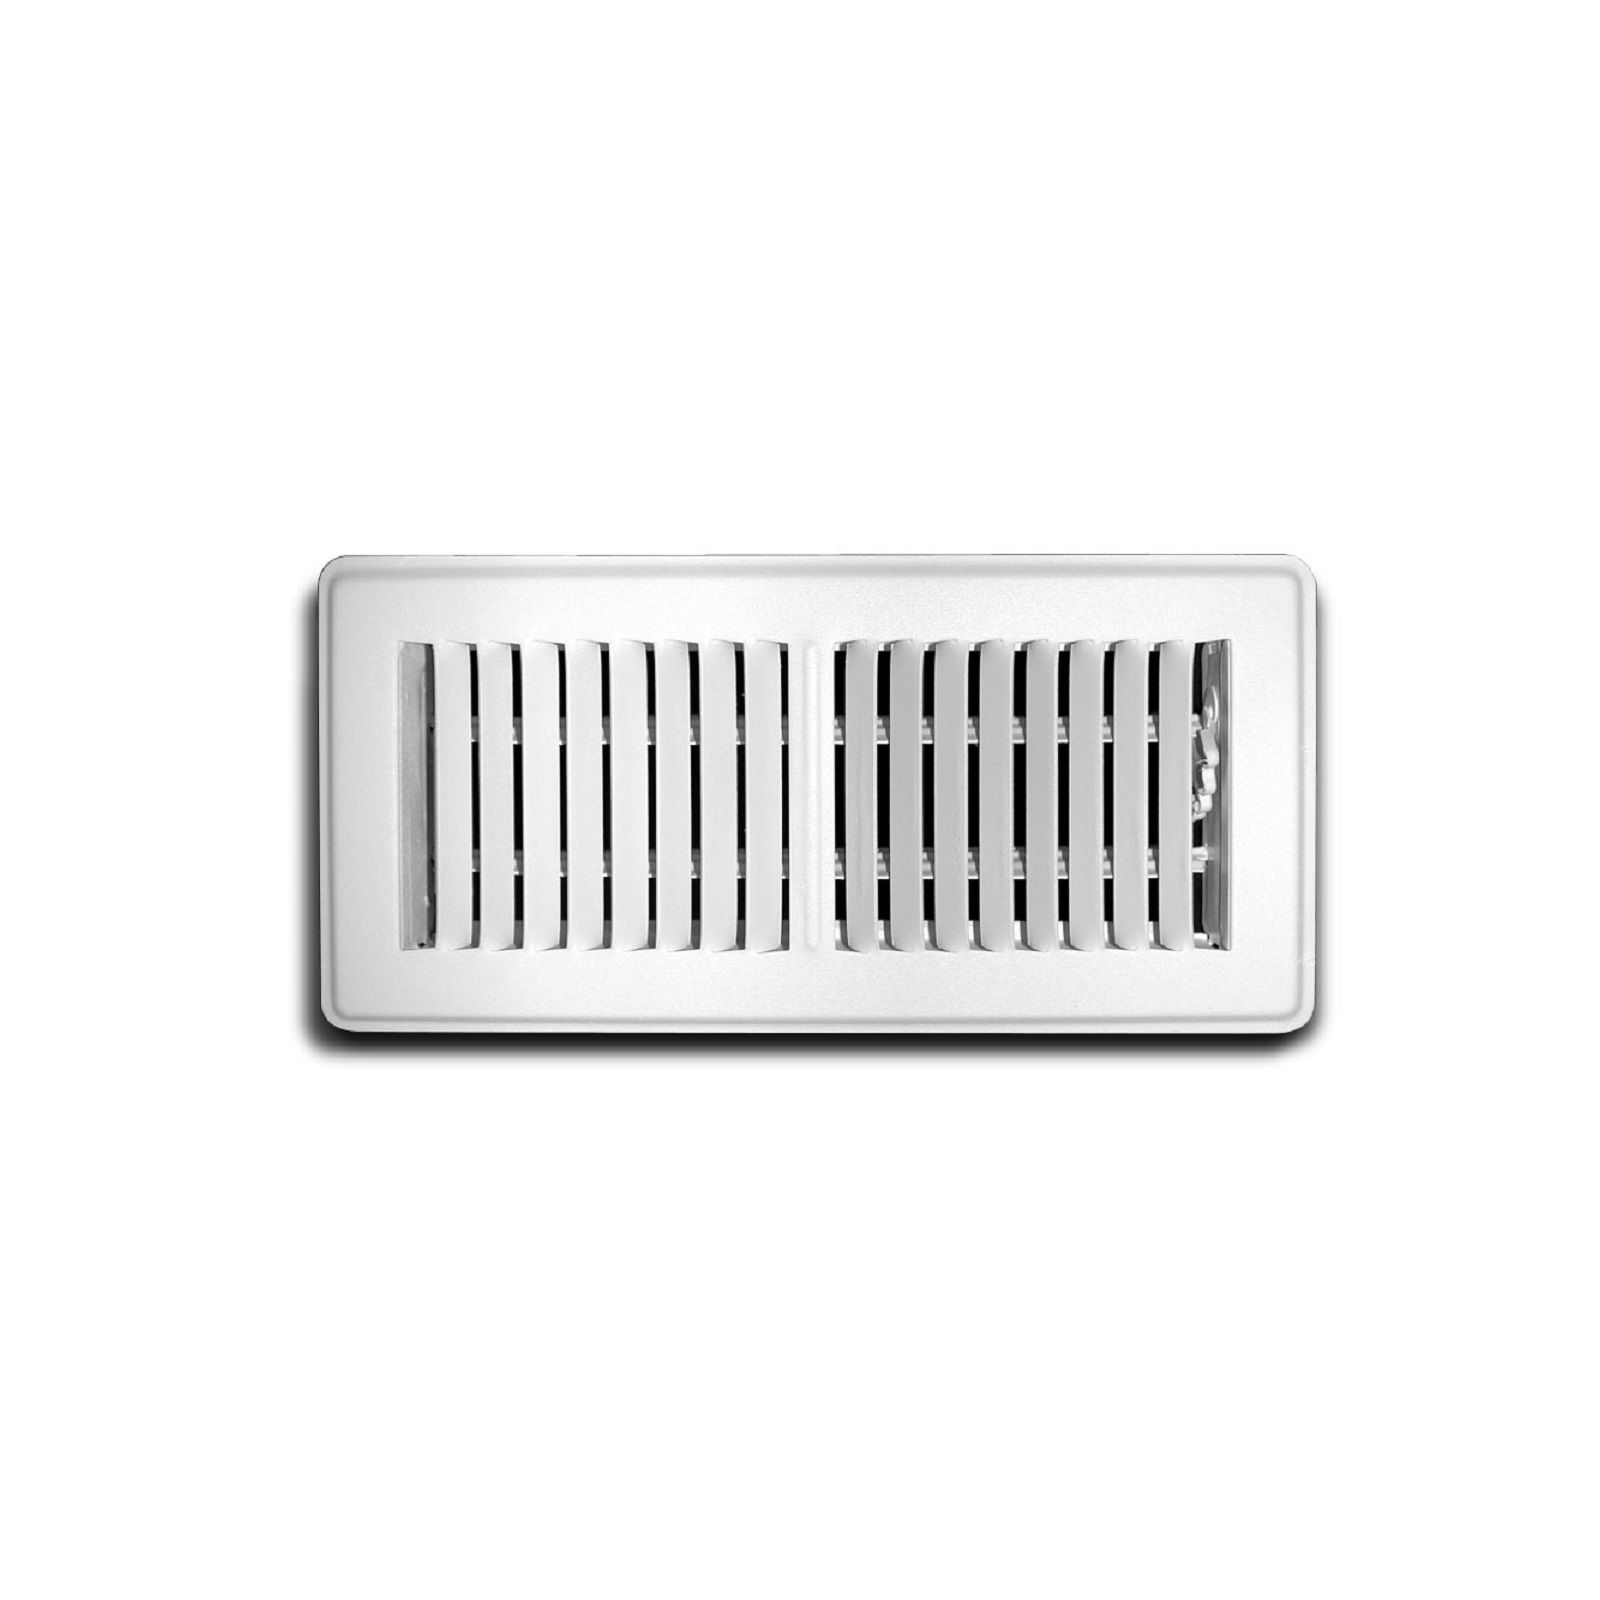 "TRUaire 150MW 04X10 - Steel Stamped Face Floor Diffuser, White, 04"" X 10"""